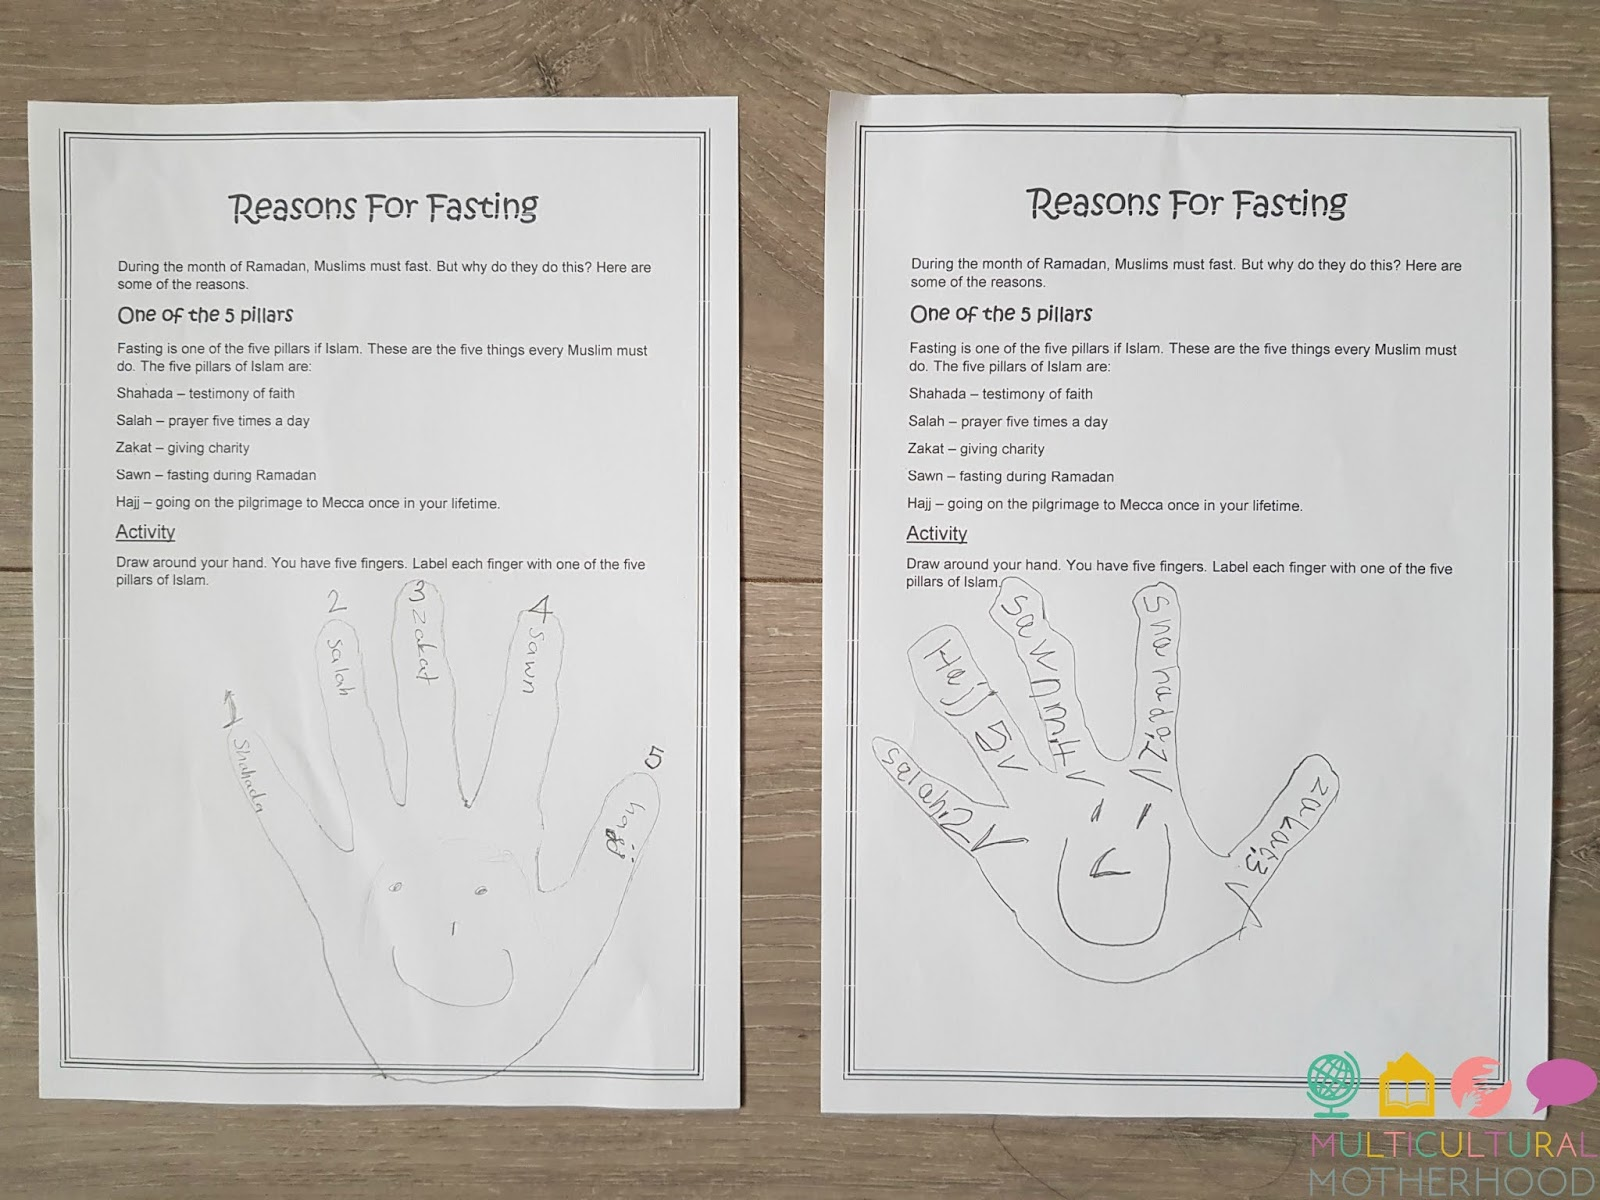 small resolution of Reasons For Fasting in Ramadan - Activities For Kids + Free Printables!    Multicultural Motherhood